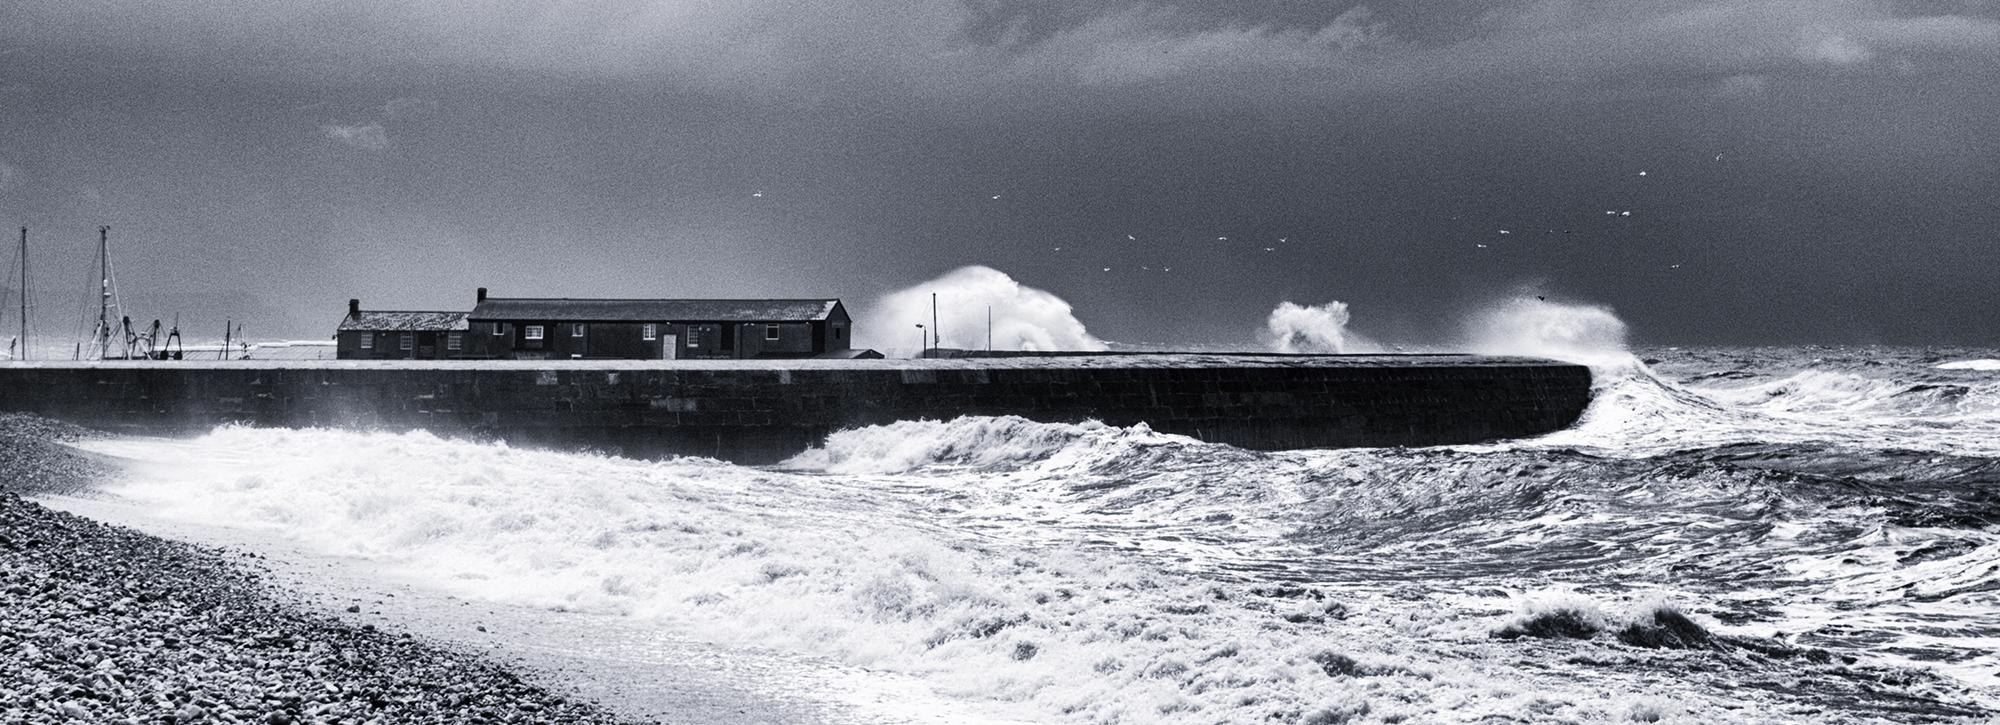 Overtopping at the Cobb Lyme Regis